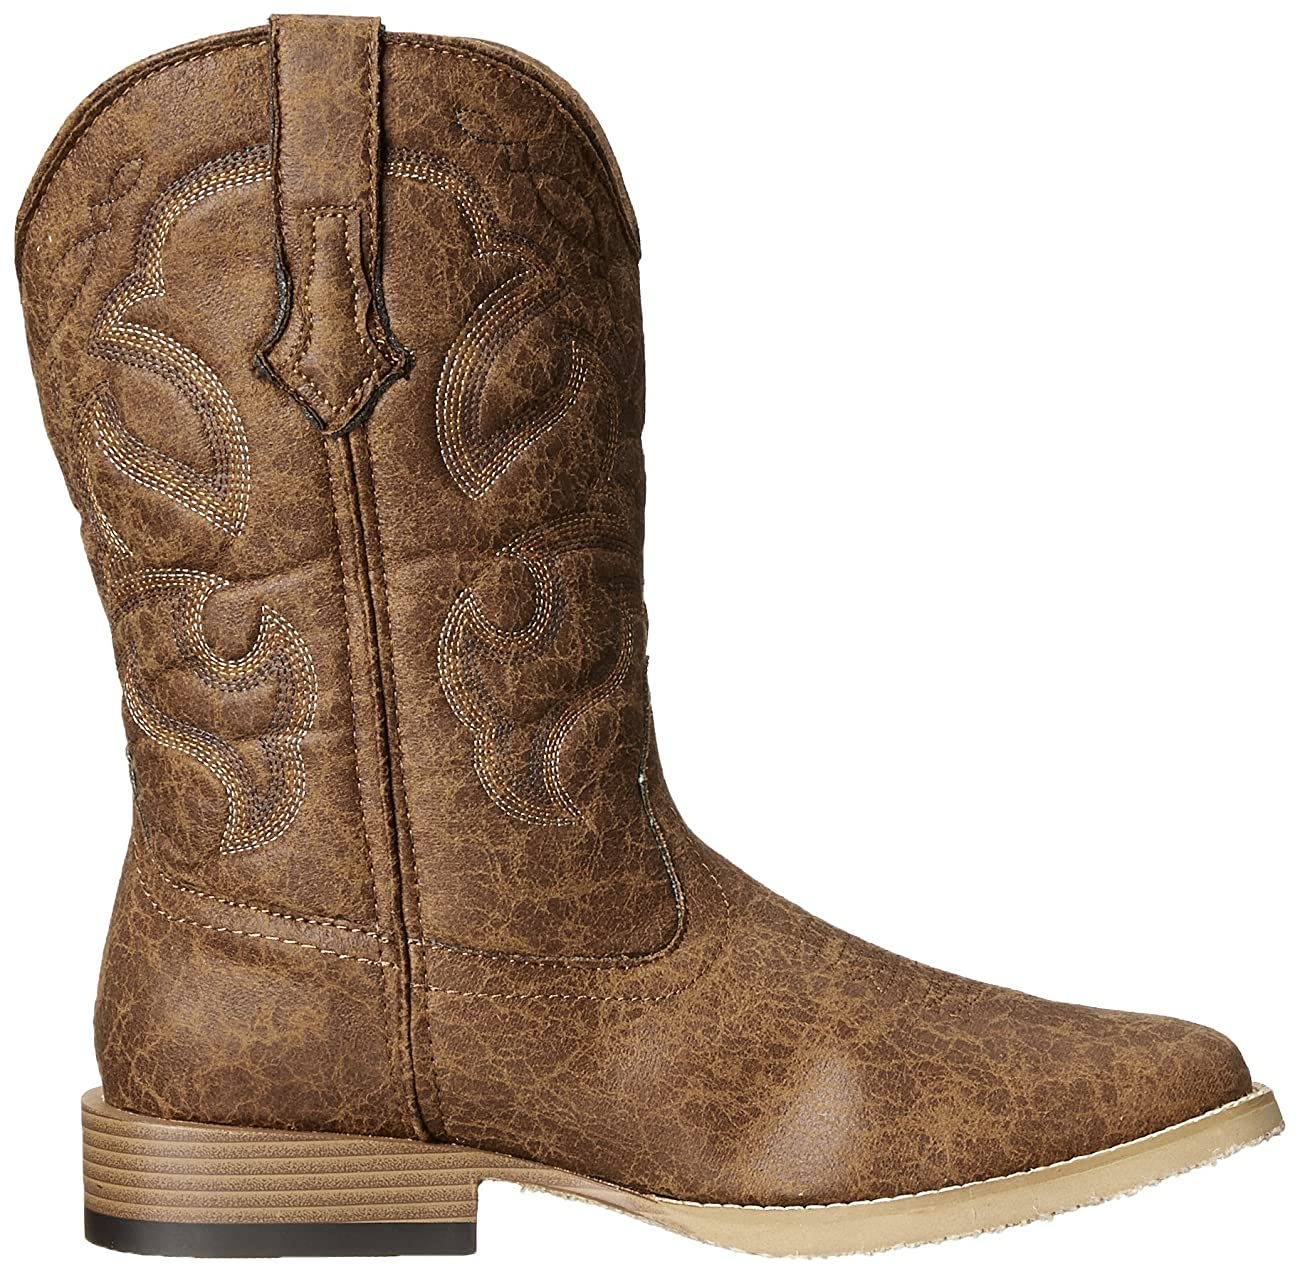 Roper Men's Vintage Square Toe Western Boot 5